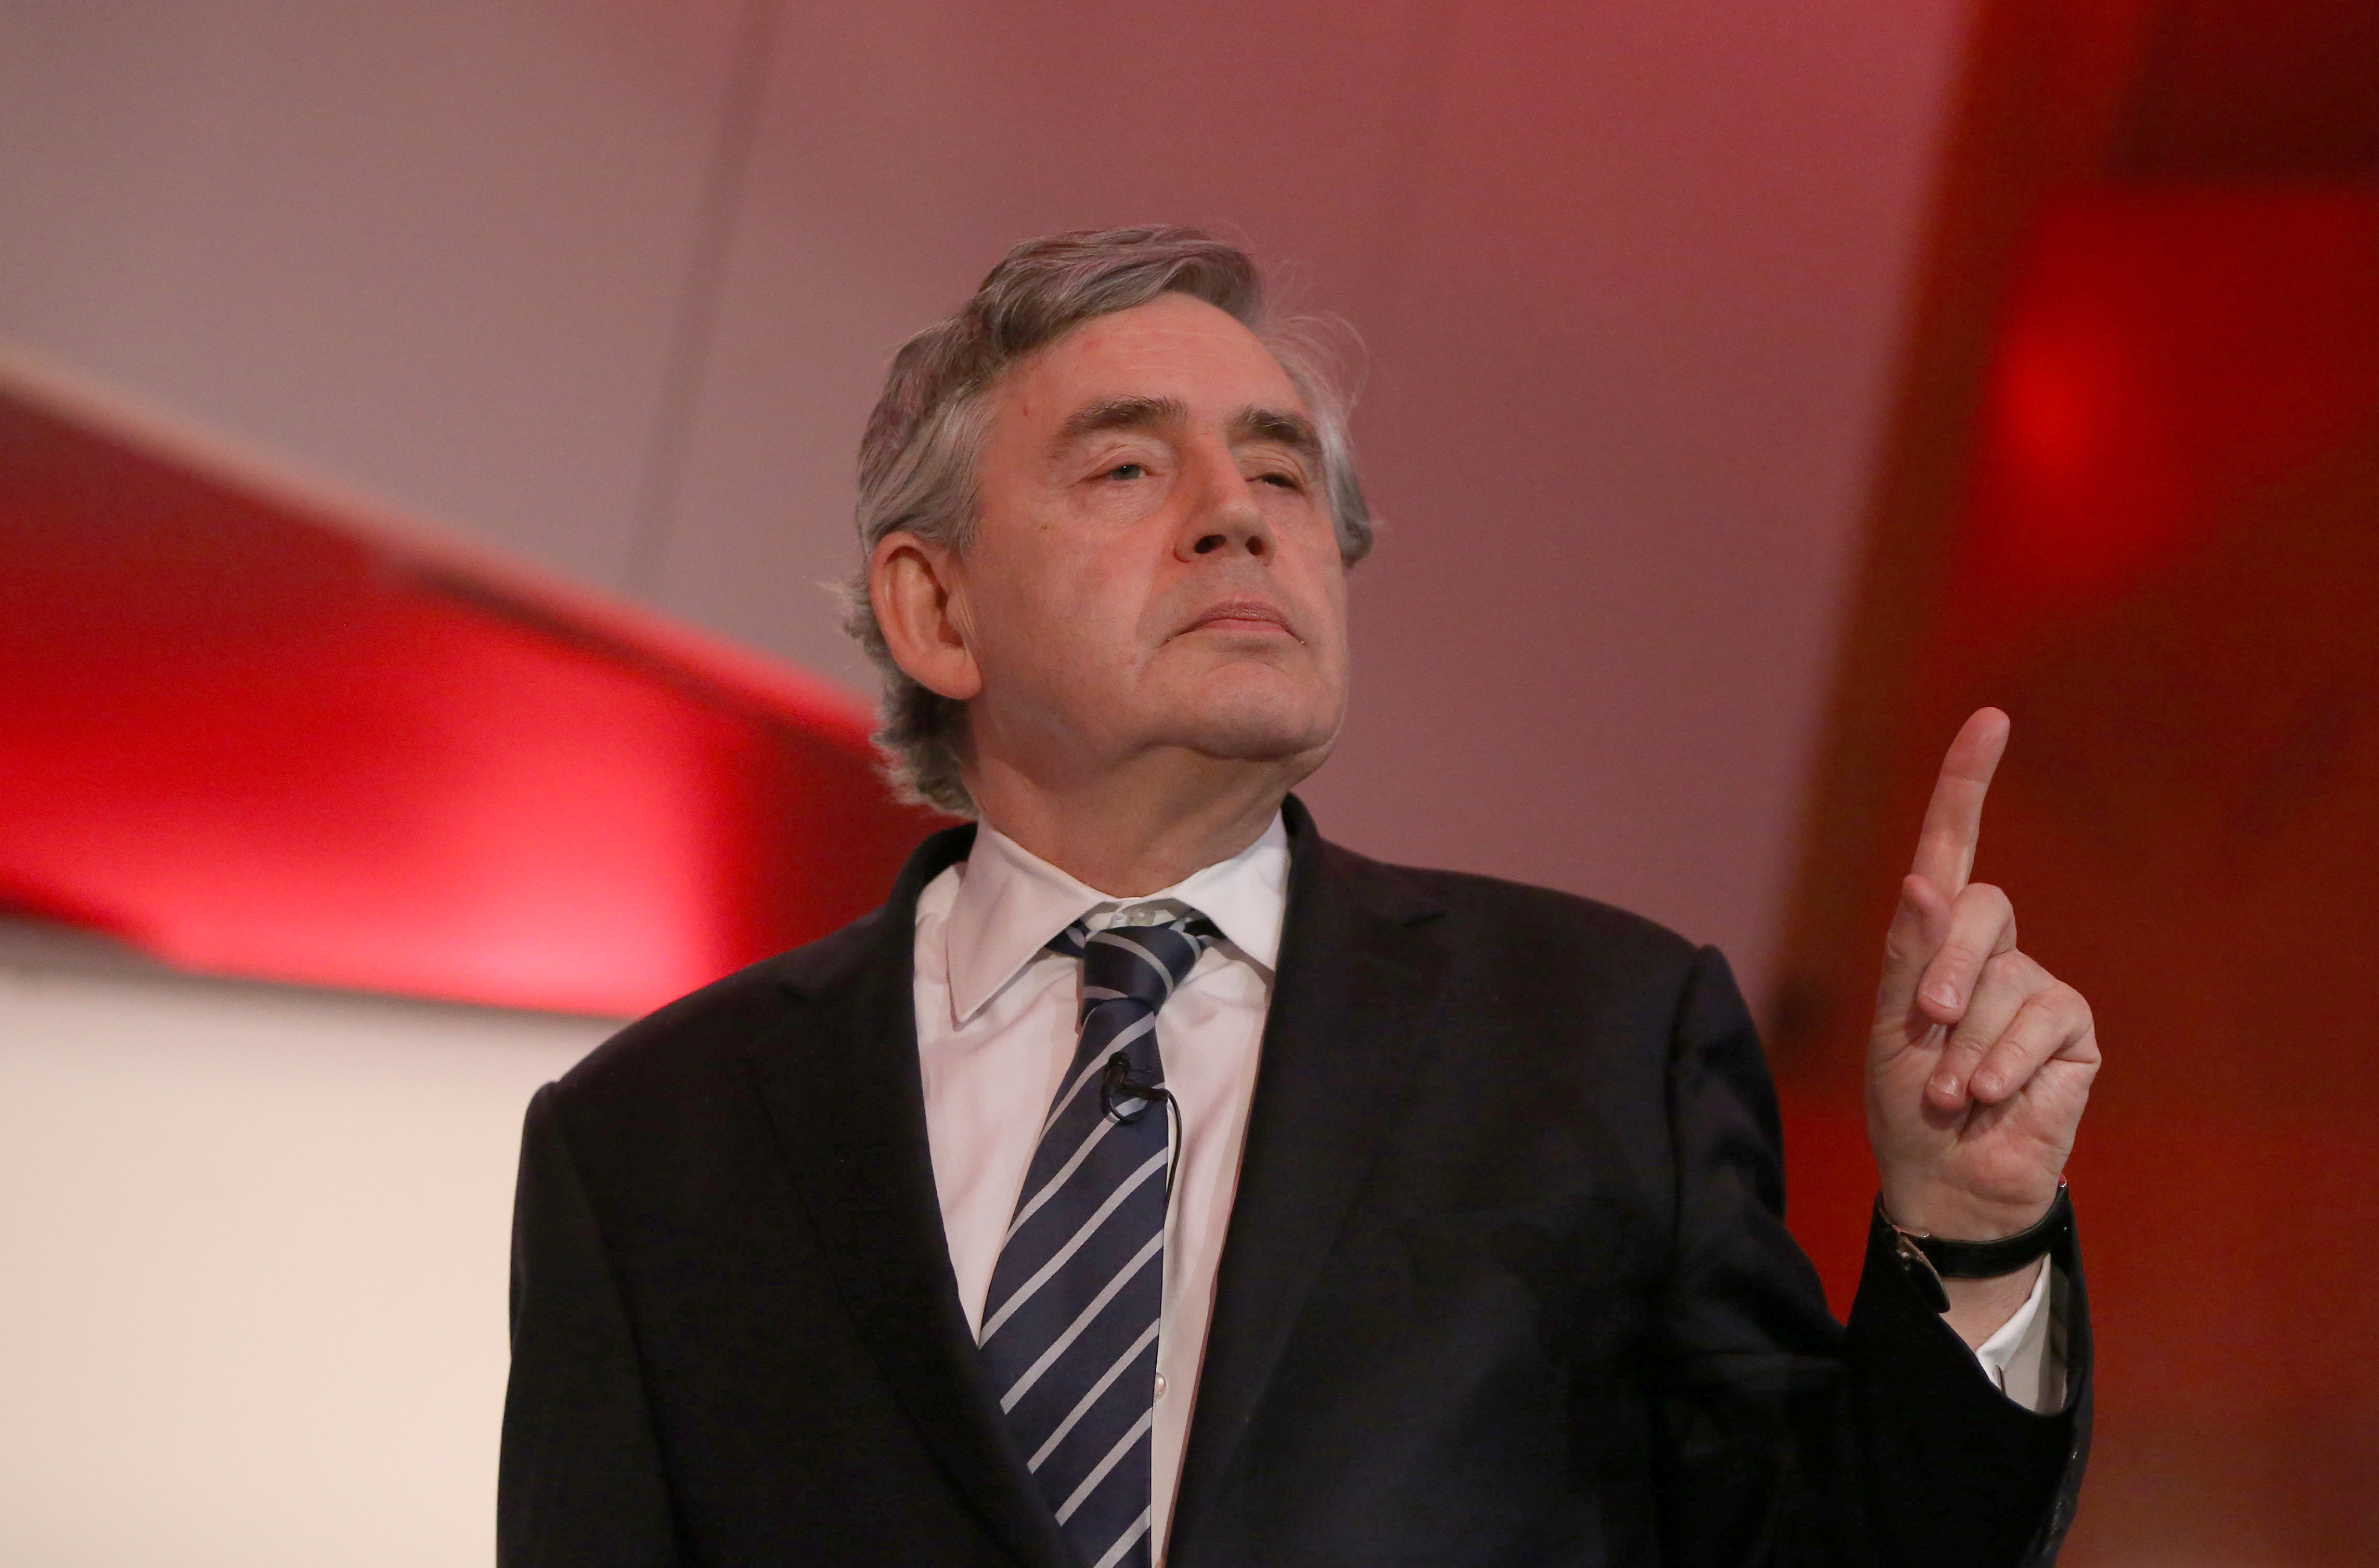 Former British Prime Minister, Gordon Brown, delivers a speech n central London, Britain May 21, 2016.  REUTERS/Neil Hall/File Photo